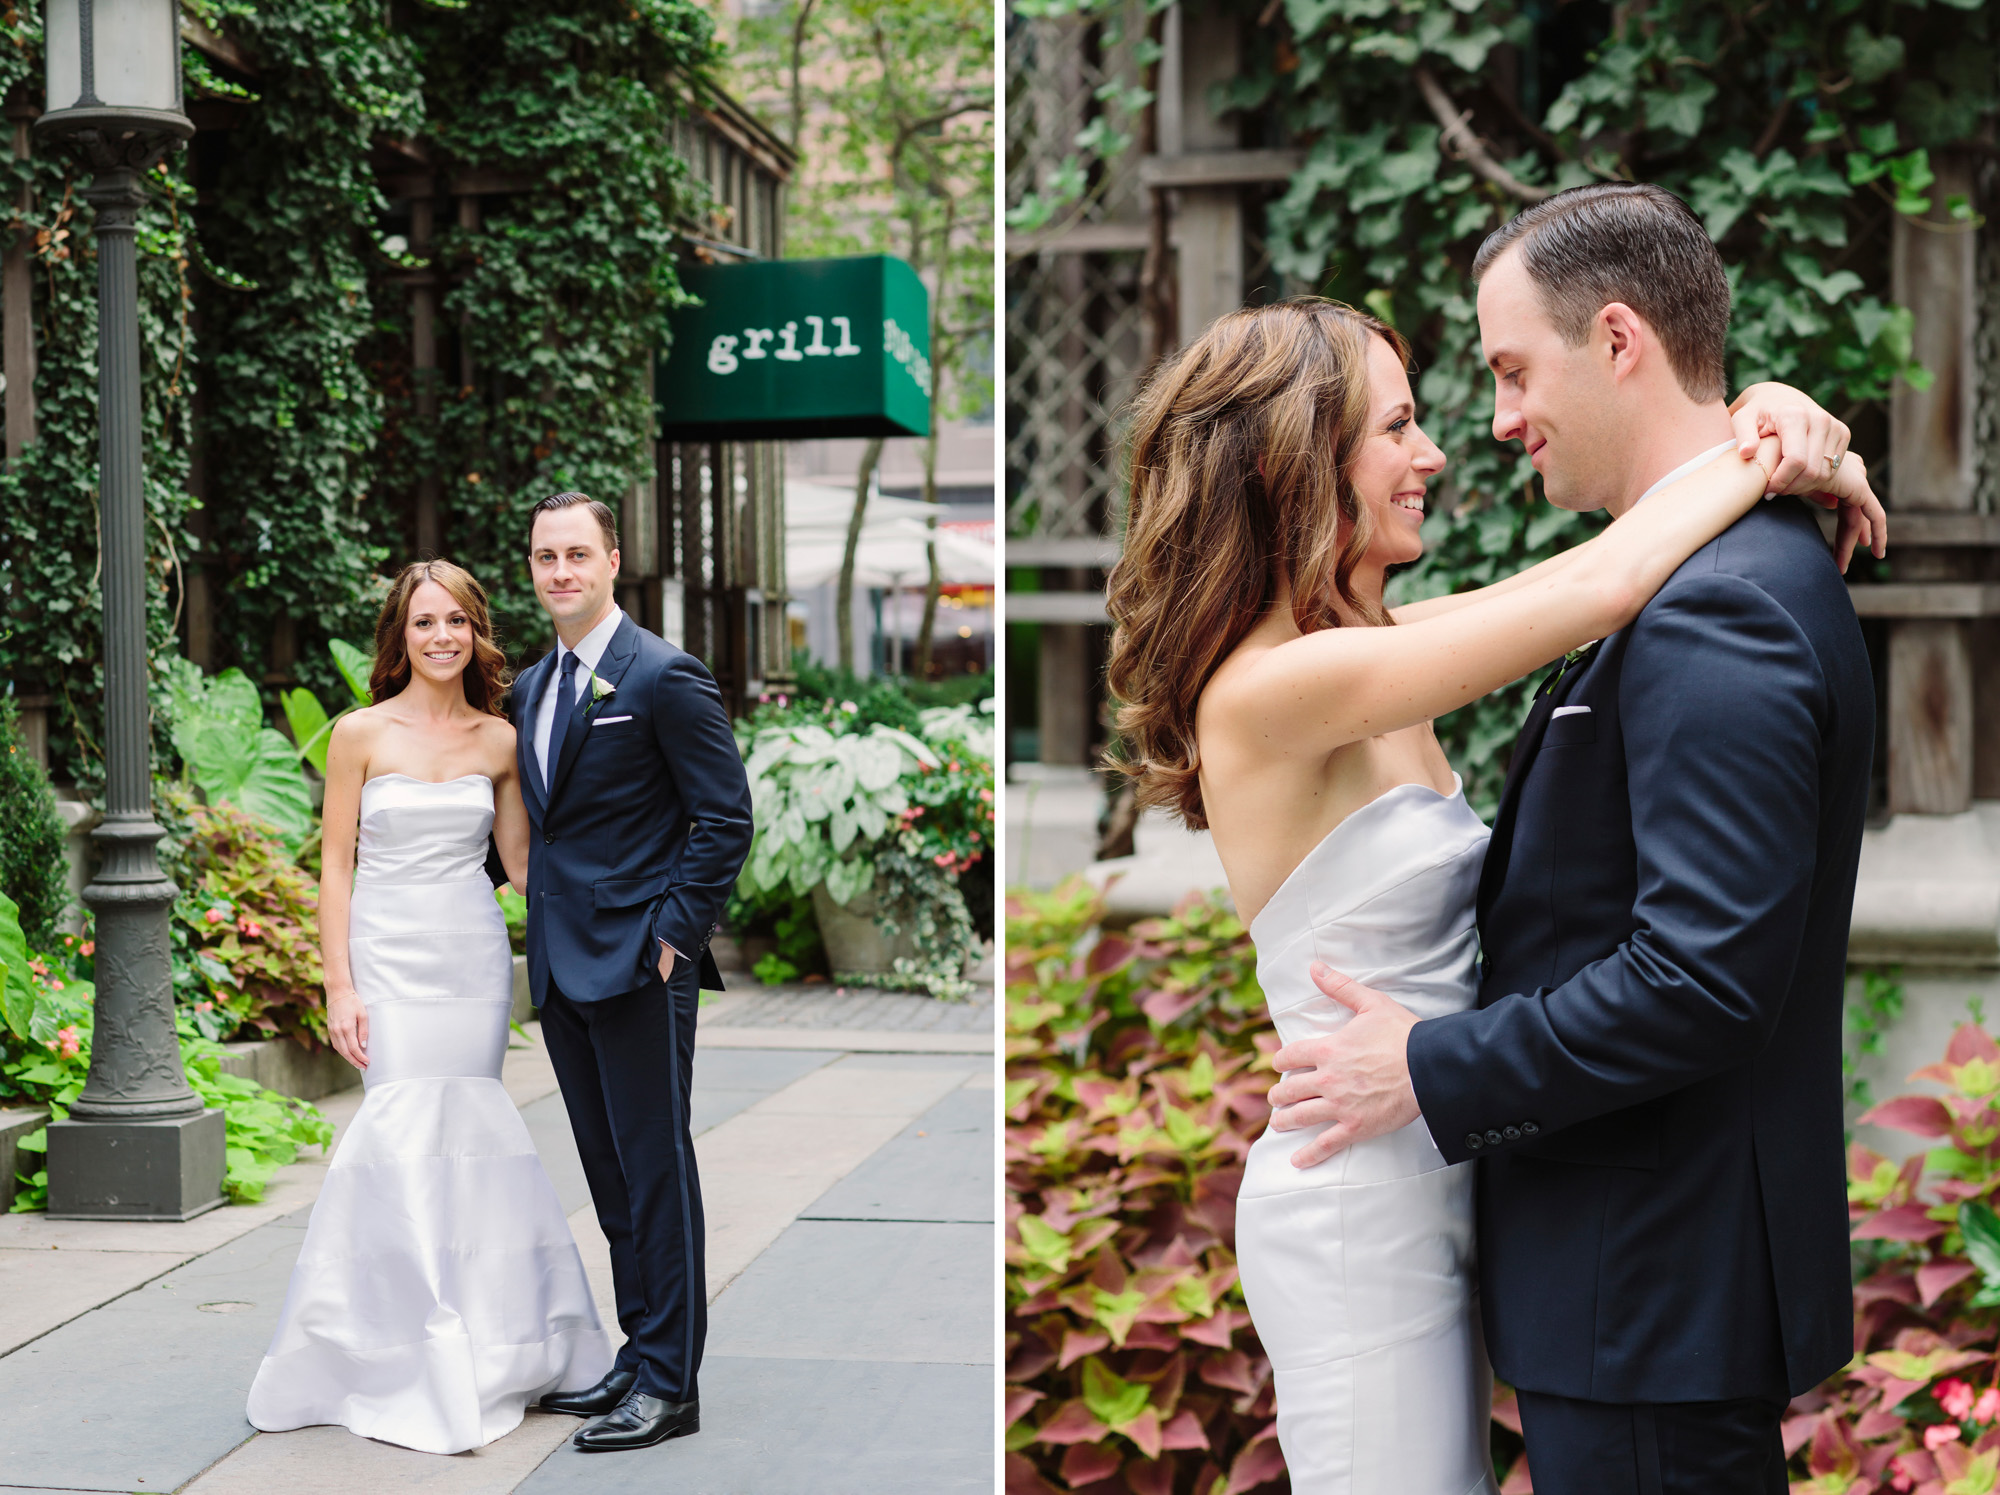 01_Ali_Lloyd_Bryant_Park_Grill_Wedding_NYC_Tanya_Salazar_Photography_001.jpg